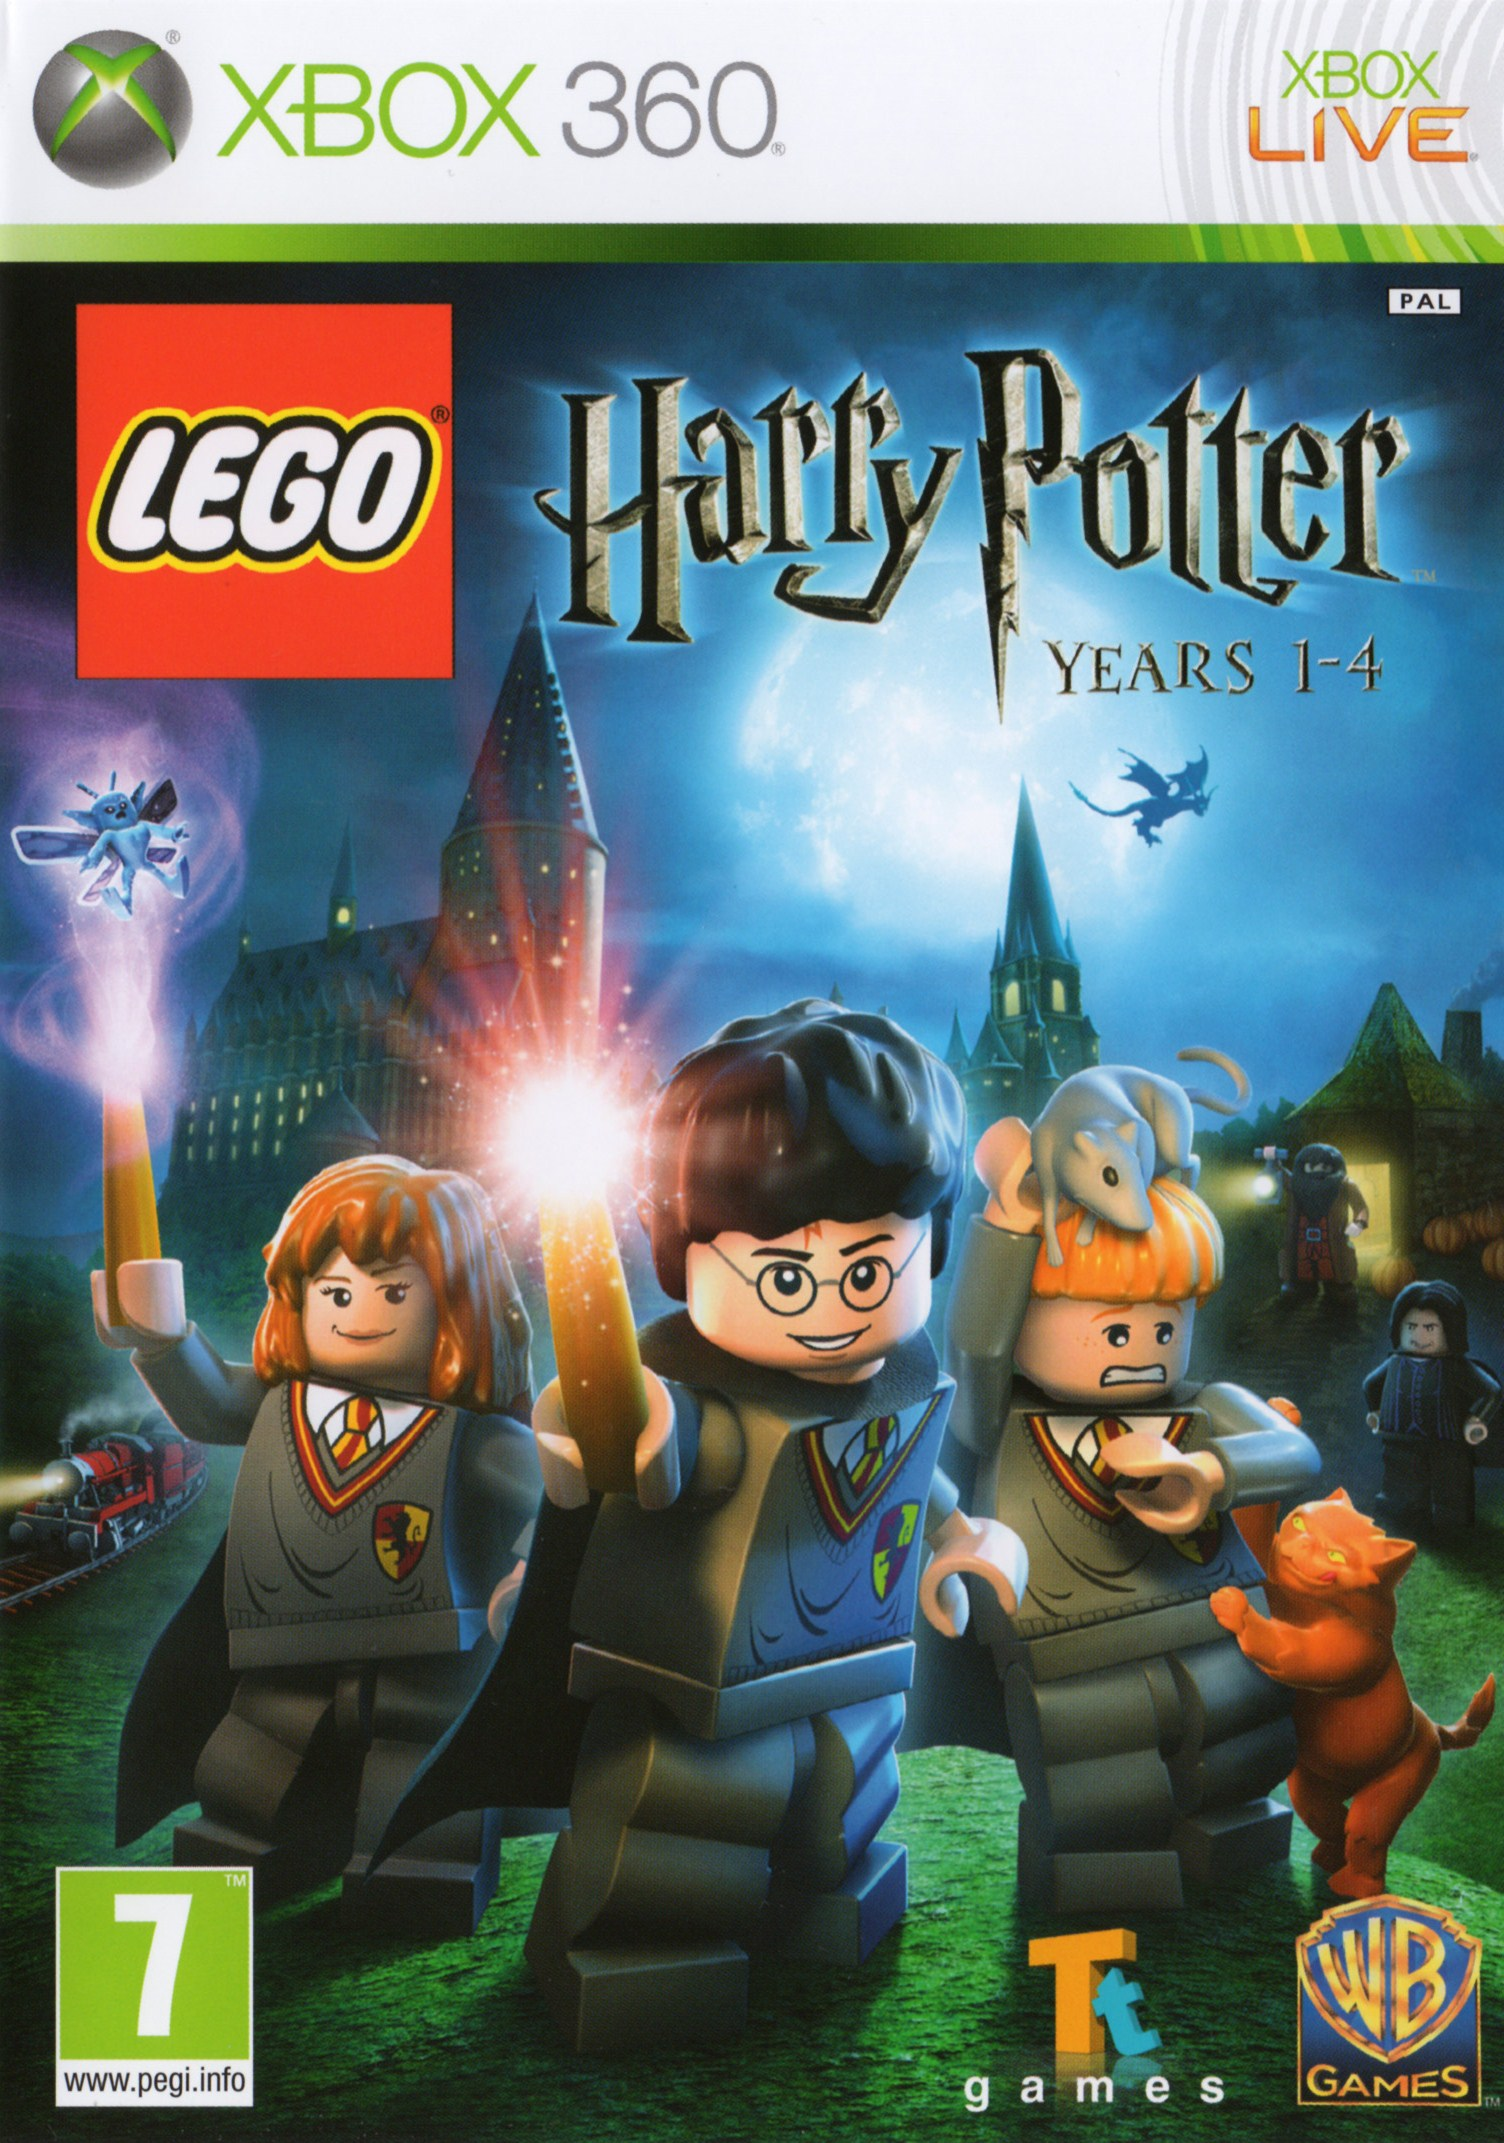 LEGO HARRY POTTER: YEARS 1-4 - X360